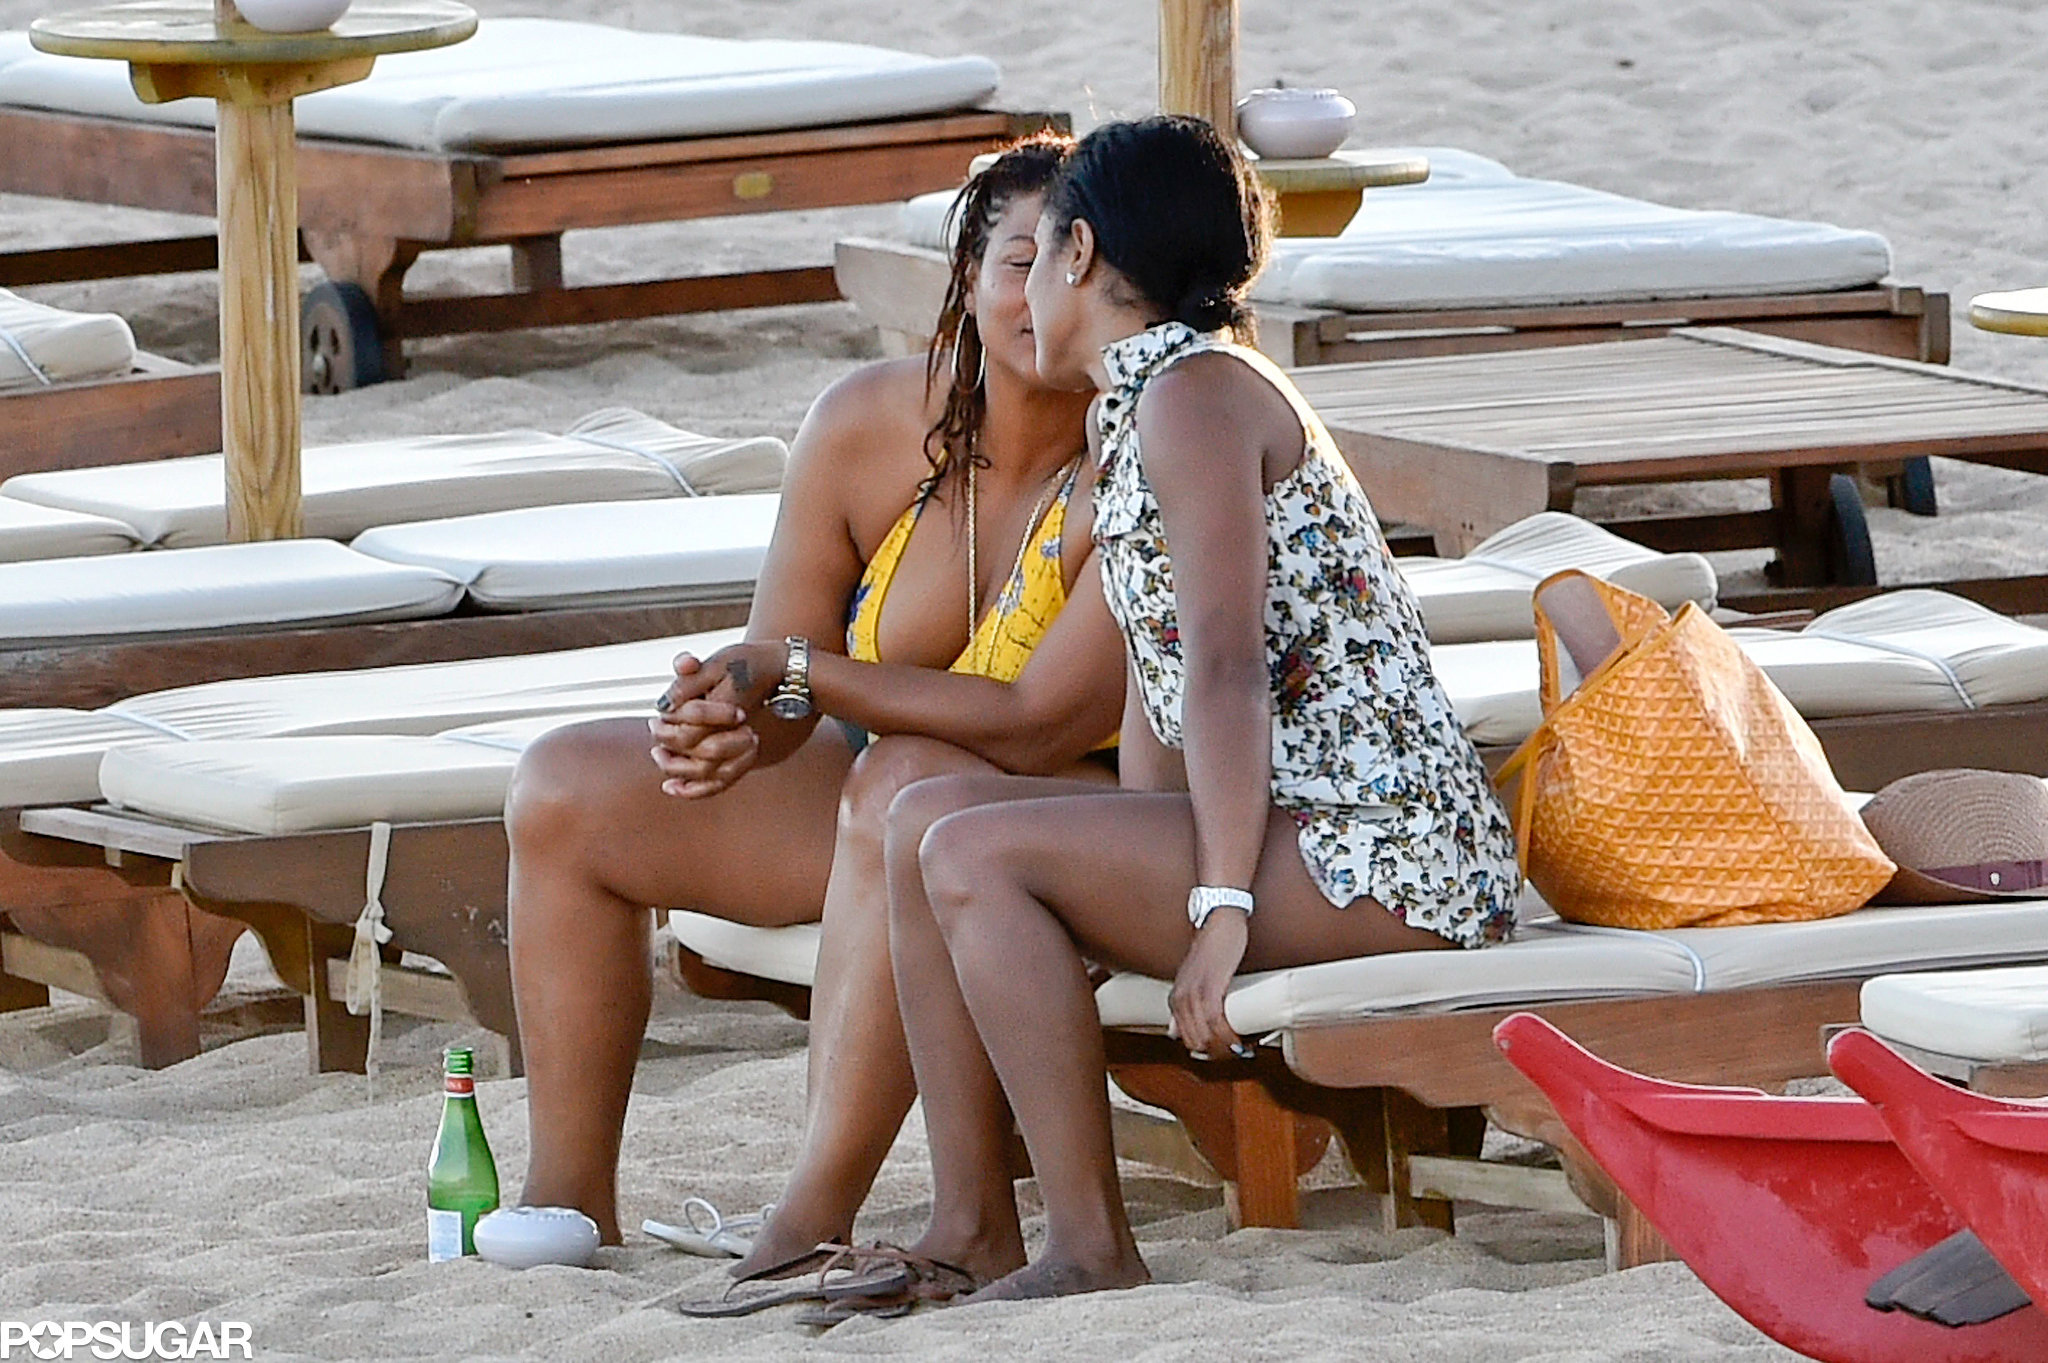 Queen Latifah Shares a Sweet Kiss With Her Girlfriend